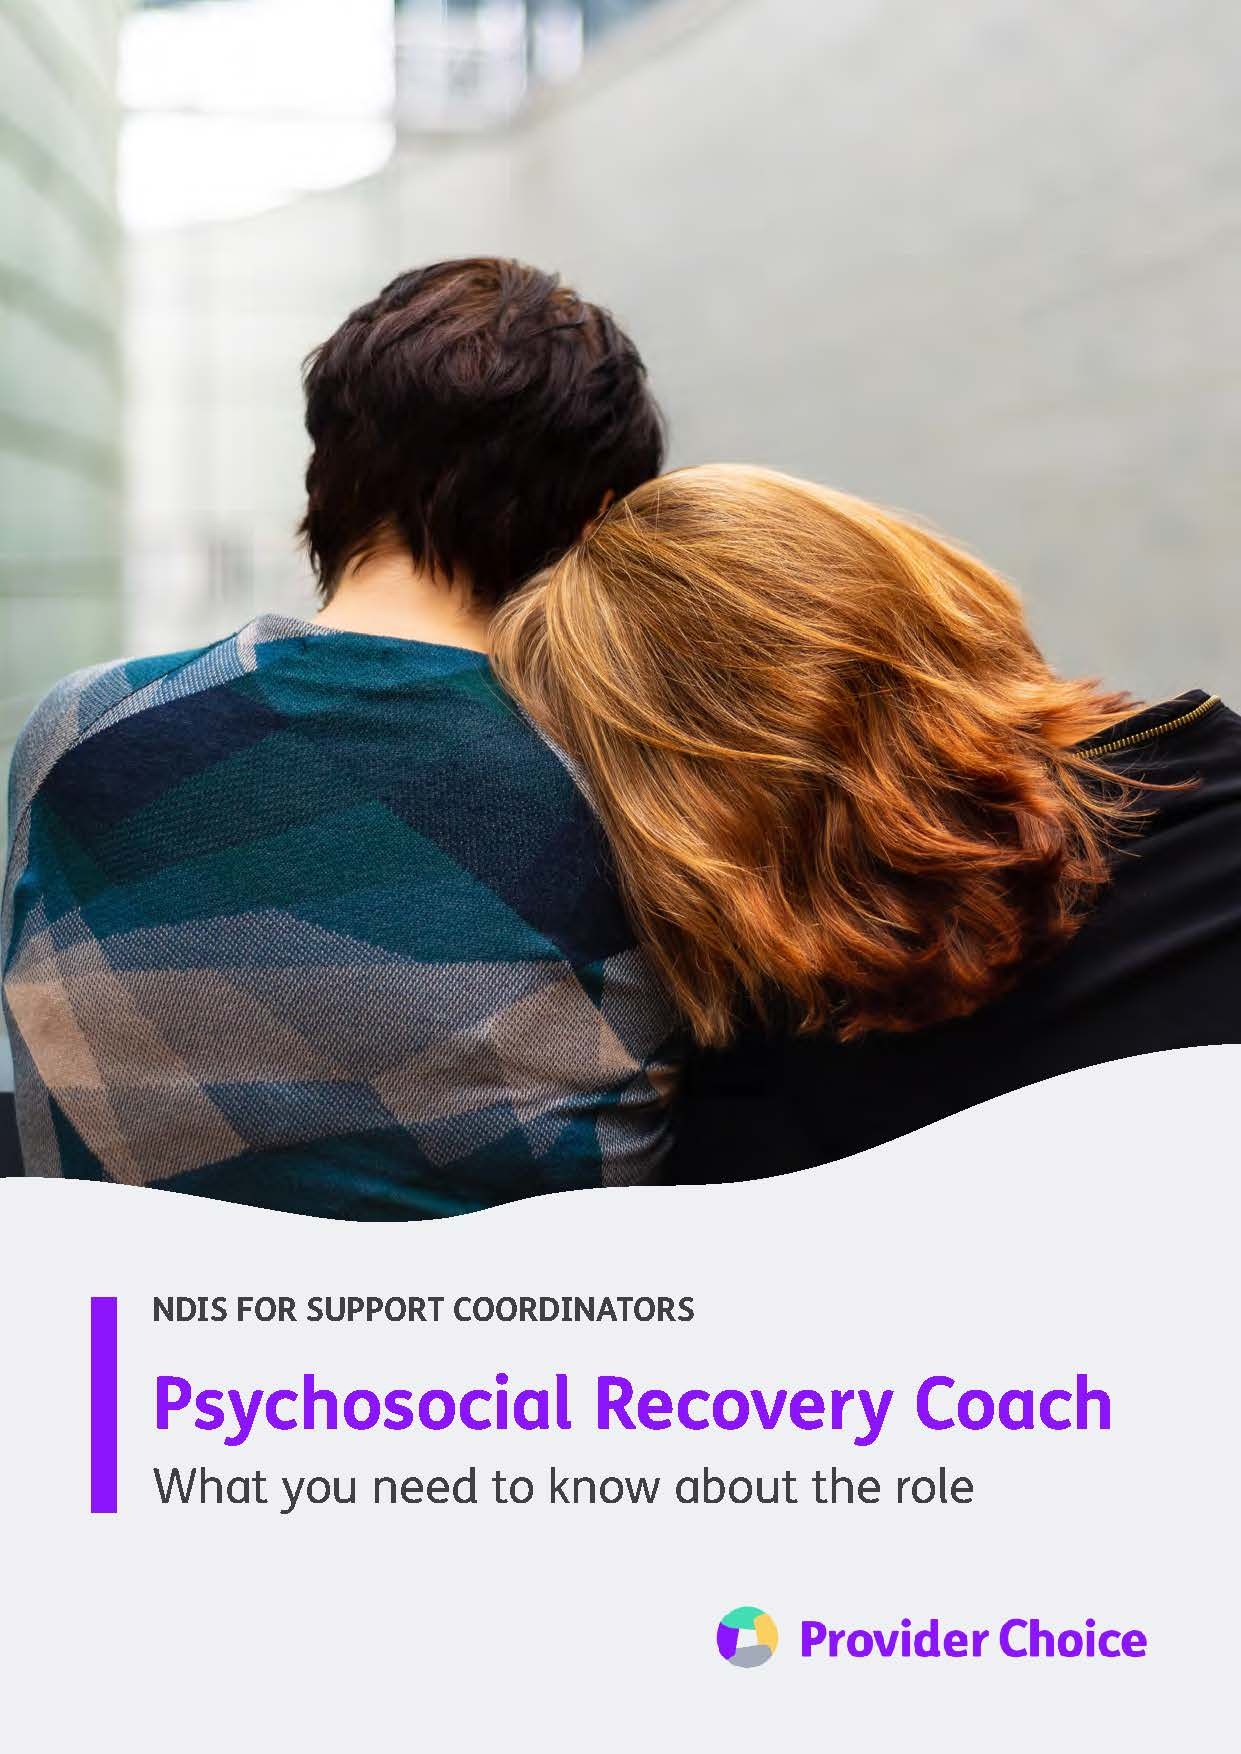 Psychosocial Recovery Coach: What you need to know about the role